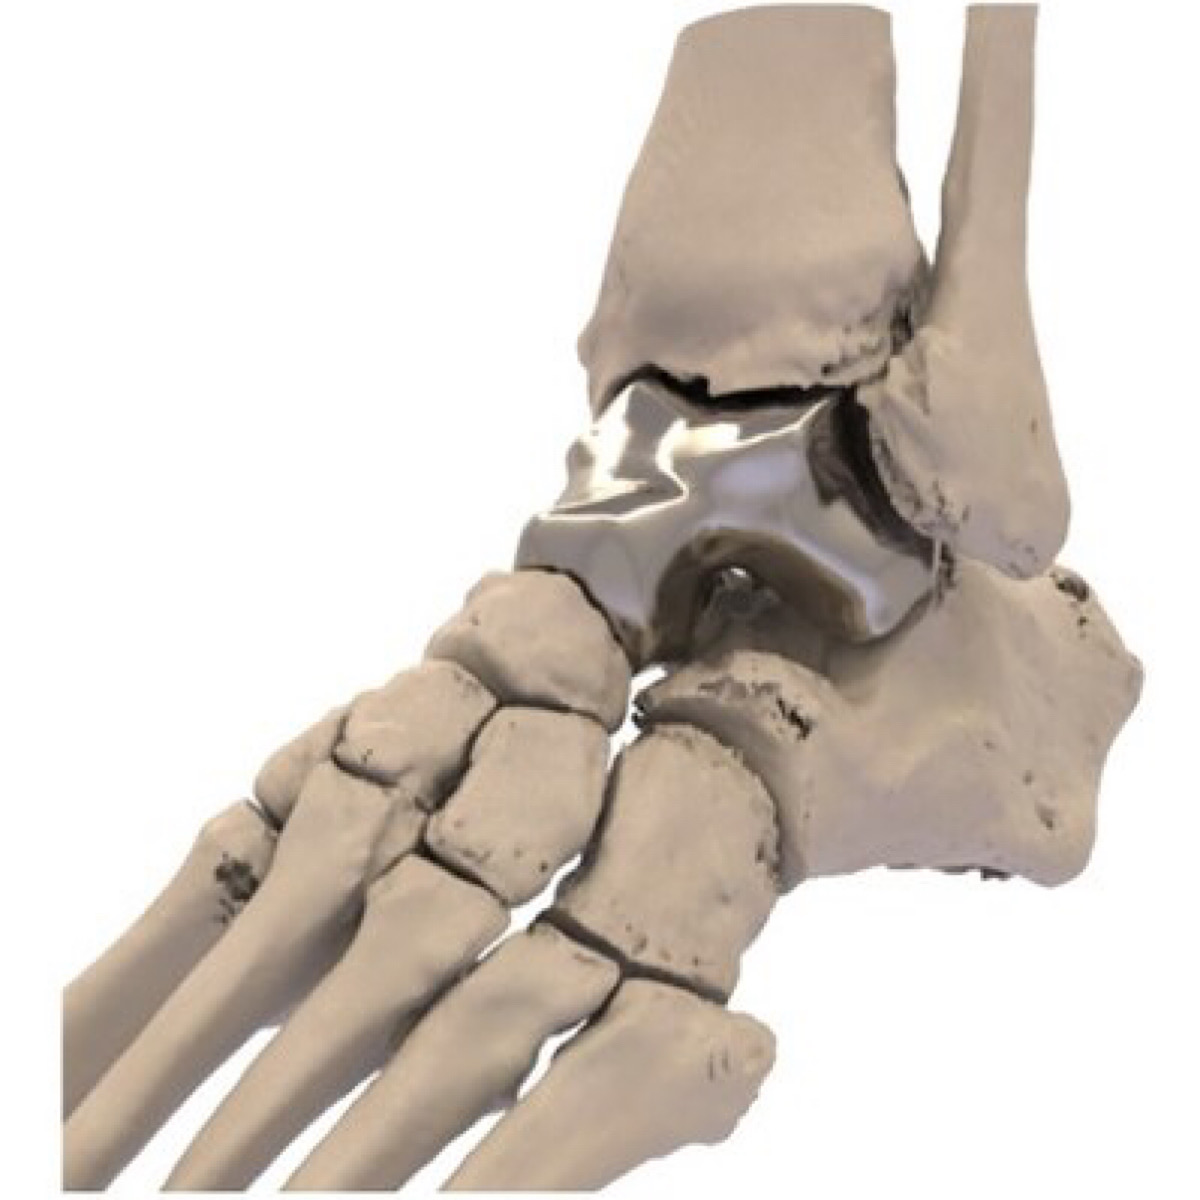 Additive Orthopaedics Gains FDA Approval for First 3D Printed Talus Implant